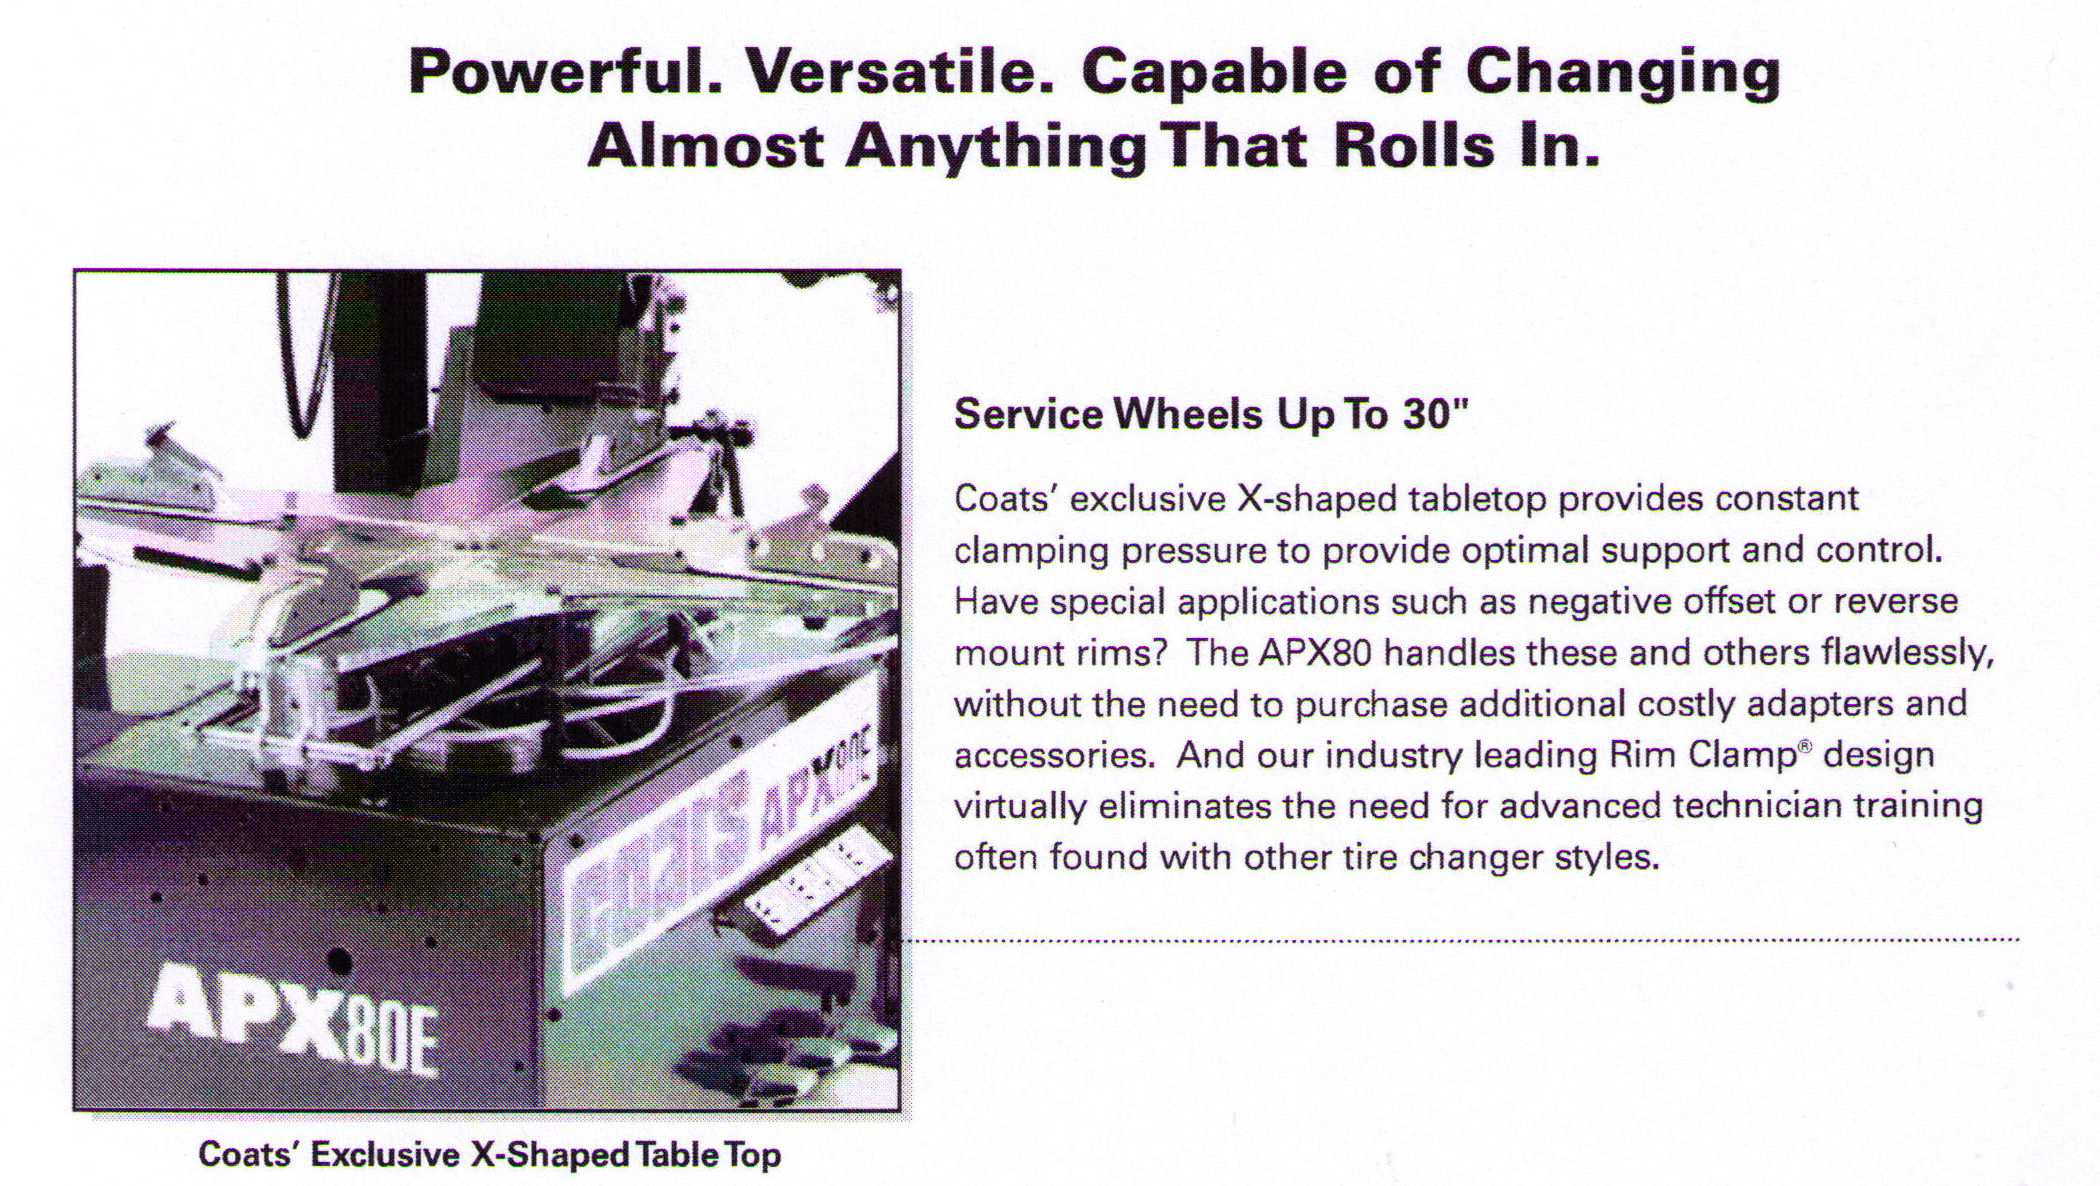 Service Wheels Up To 30 Inches In Diameter And As Small As 9 Inches